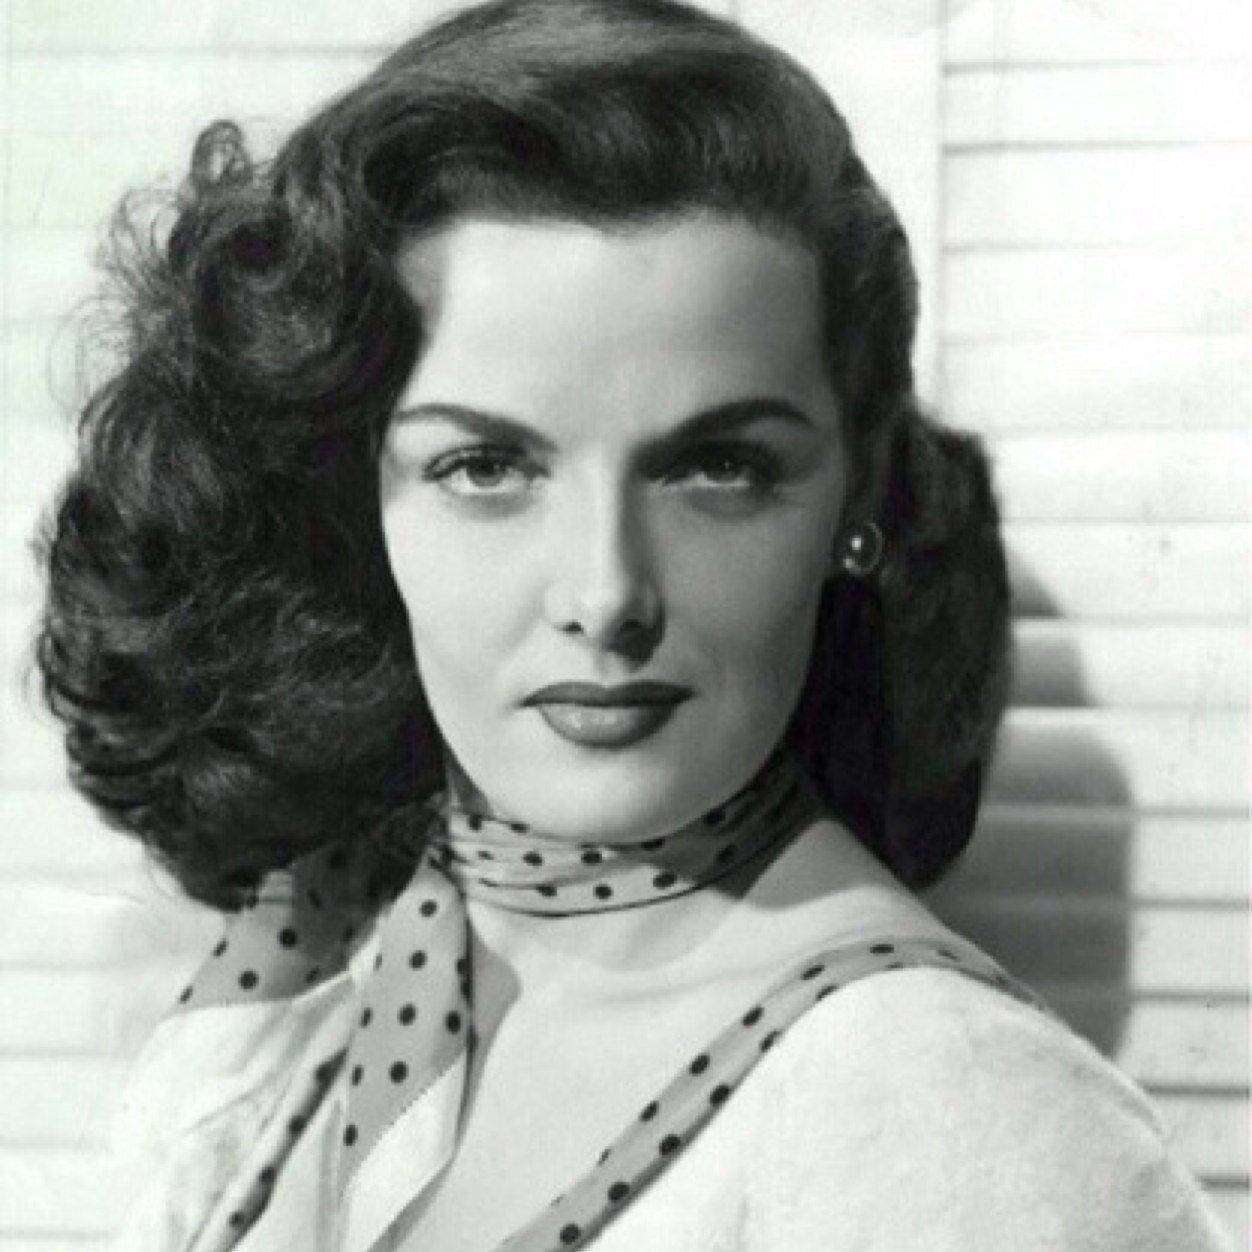 jane russell 2011jane russell marilyn monroe, jane russell kibbe, jane russell the outlaw poster, jane russell last photo, jane russell 2011, jane russell autobiography, jane russell interview about marilyn monroe, jane russell wikipedia, jane russell, jane russell photos, jane russell quotes, jane russell imdb, jane russell wiki, jane russell old, jane russell adoption ireland, jane russell gentlemen prefer blondes, jane russell underwater, jane russell youtube, jane russell marilyn monroe movie, jane russell adoption